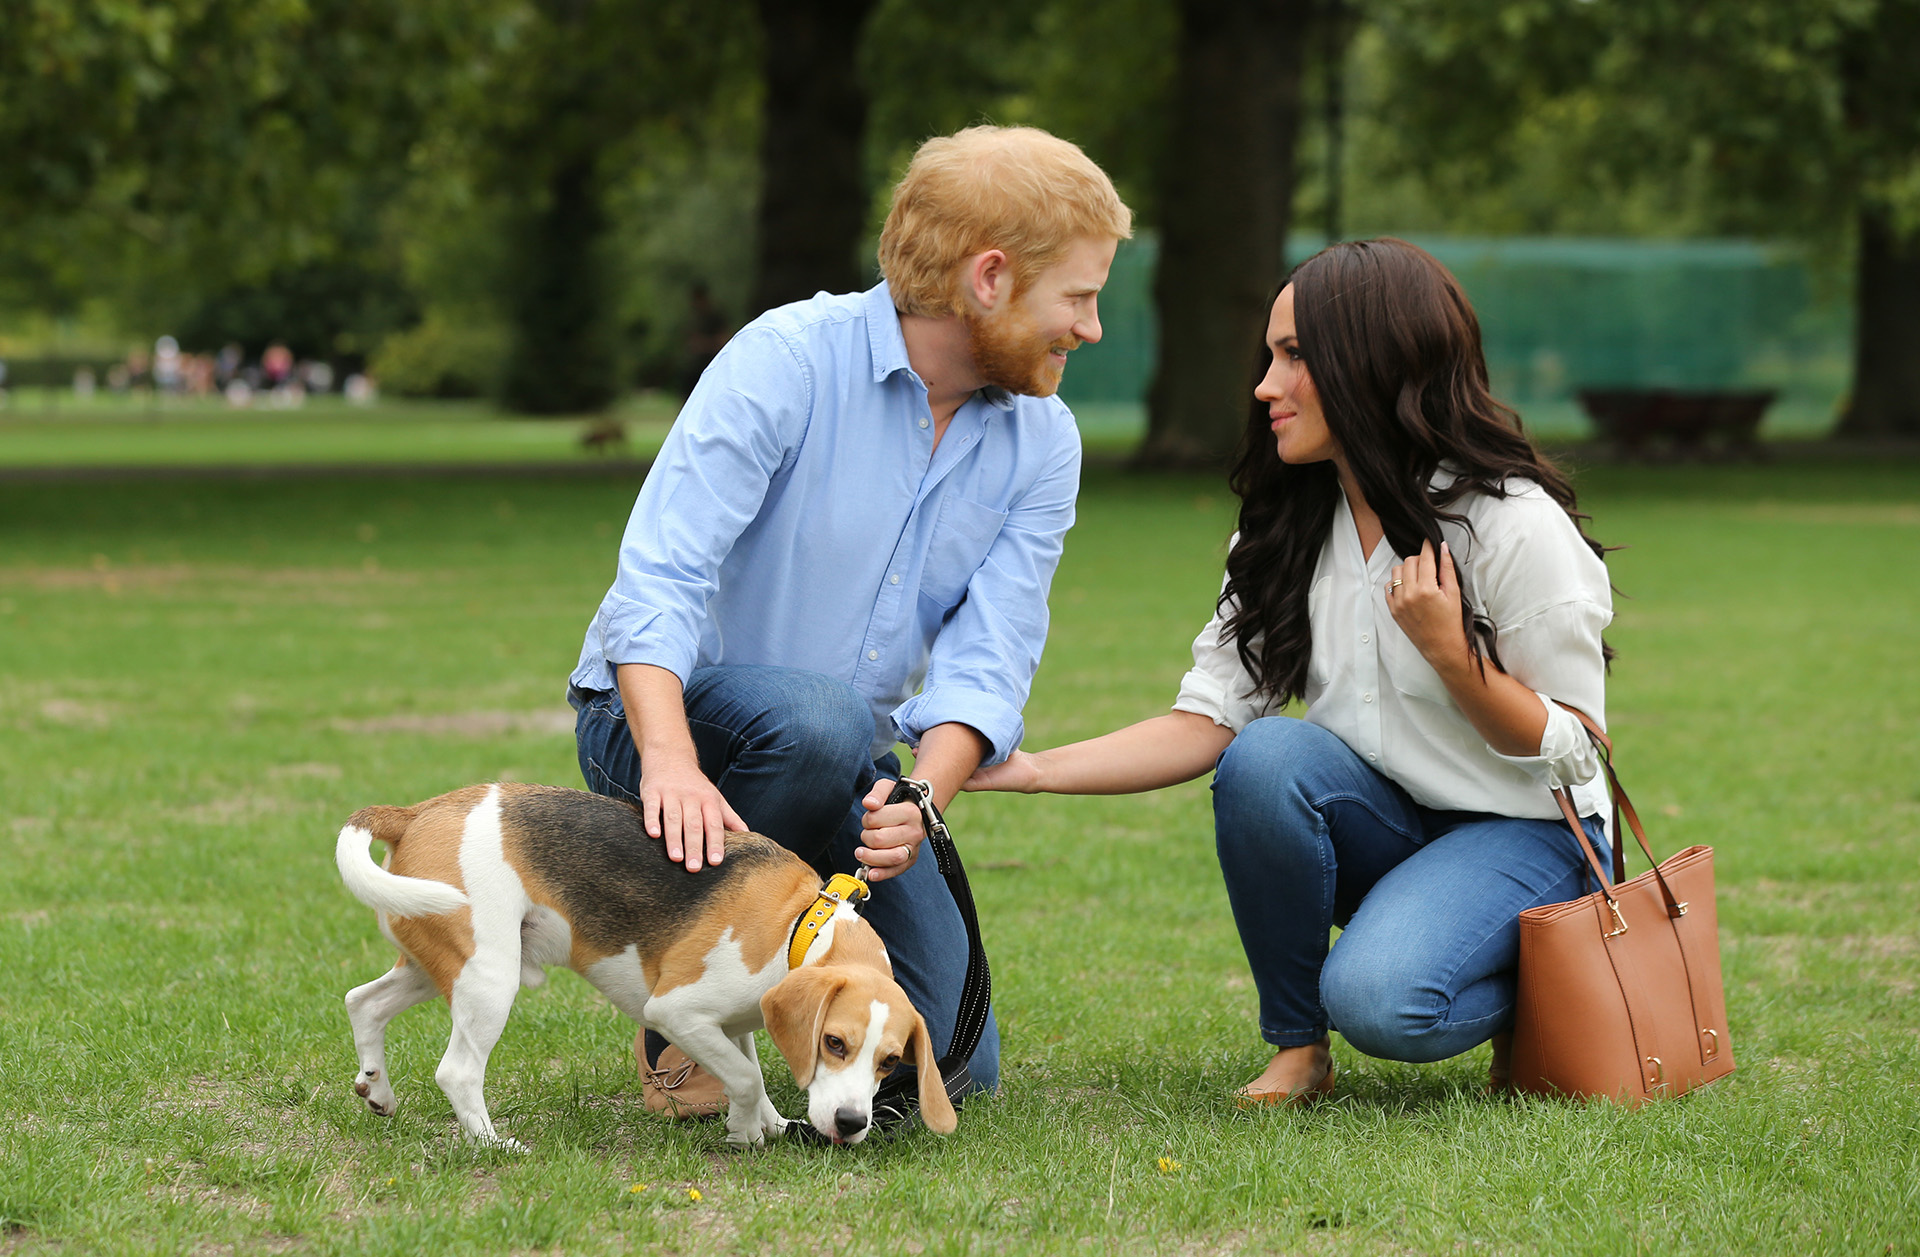 Harry & Meghan in the park